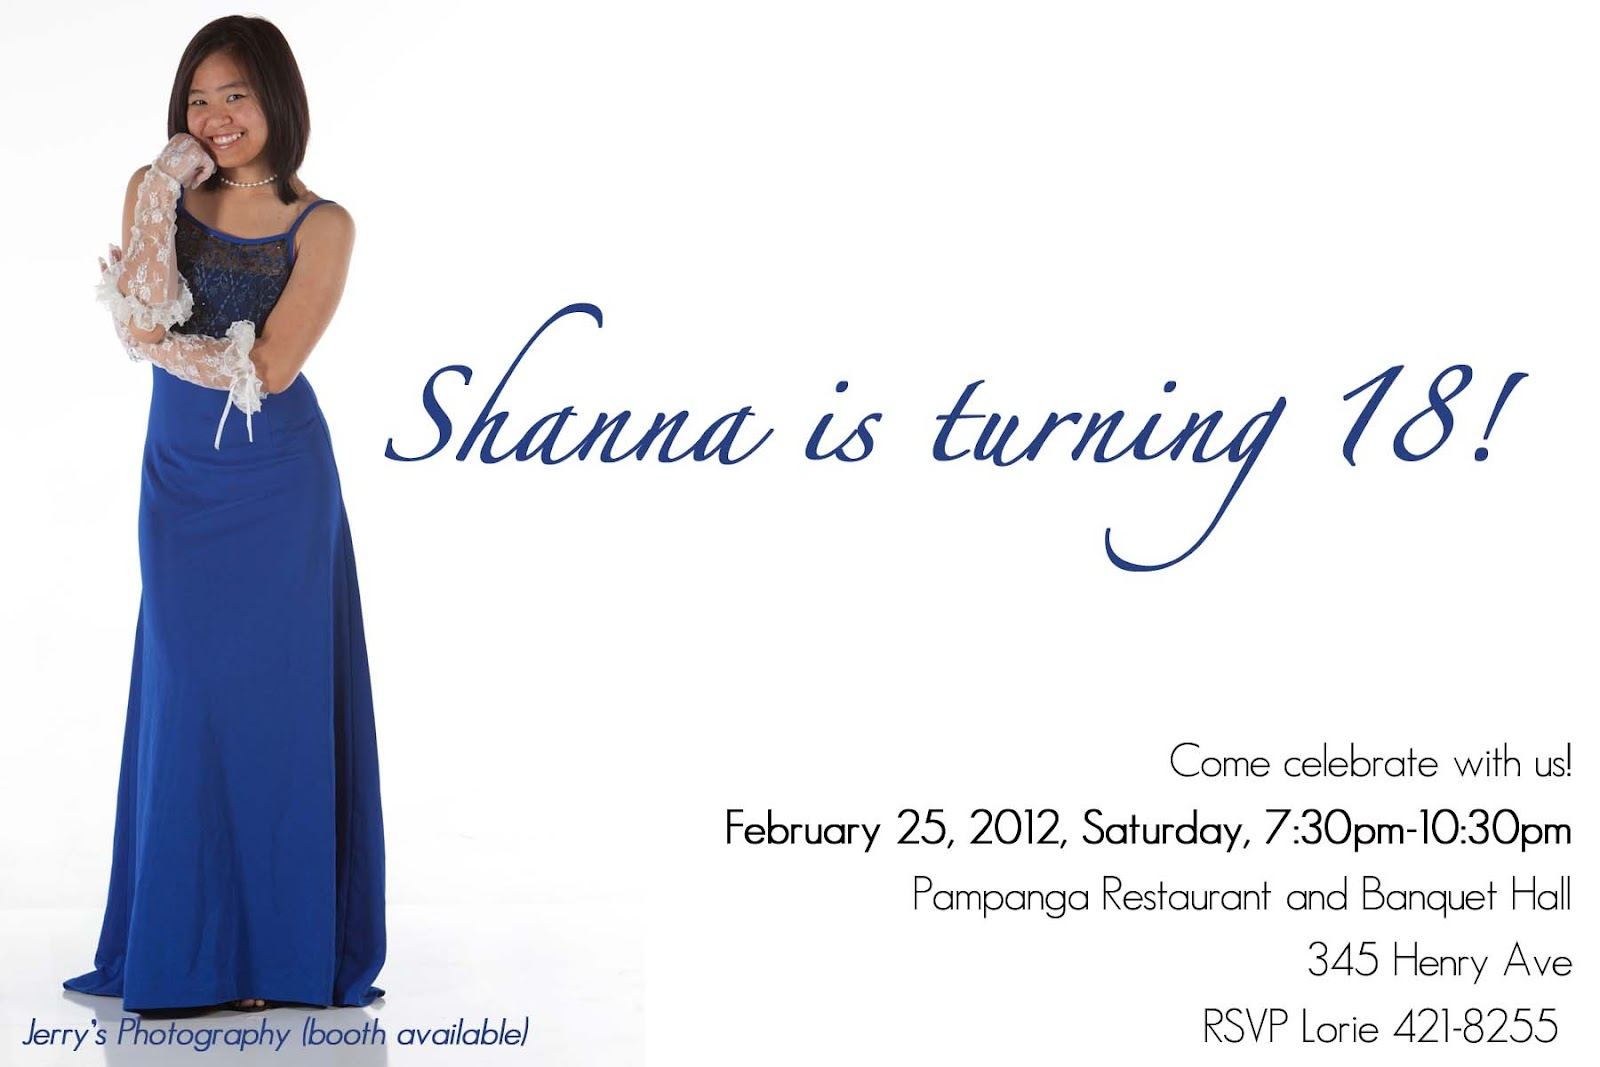 Mommy designs 2012 shannas 18th birthday invitation filmwisefo